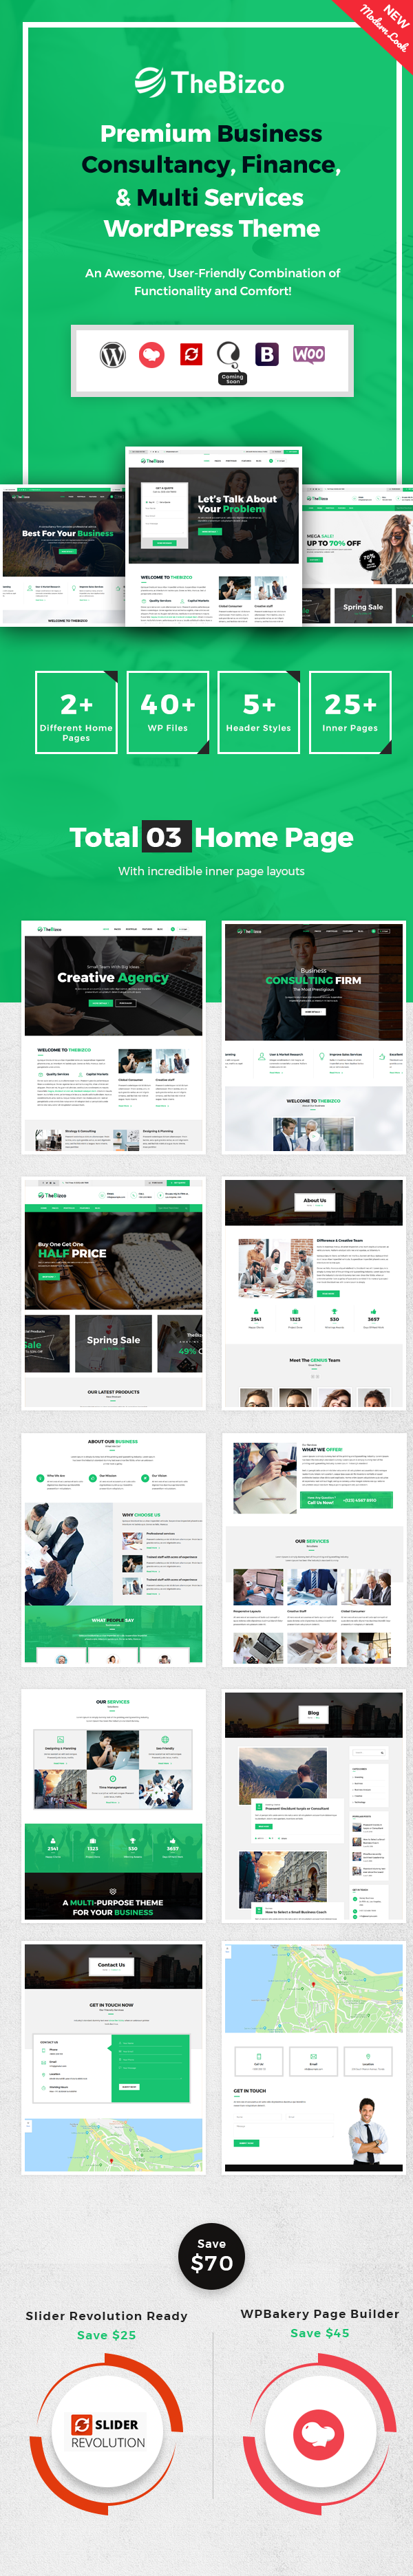 TheBizco WordPress Theme